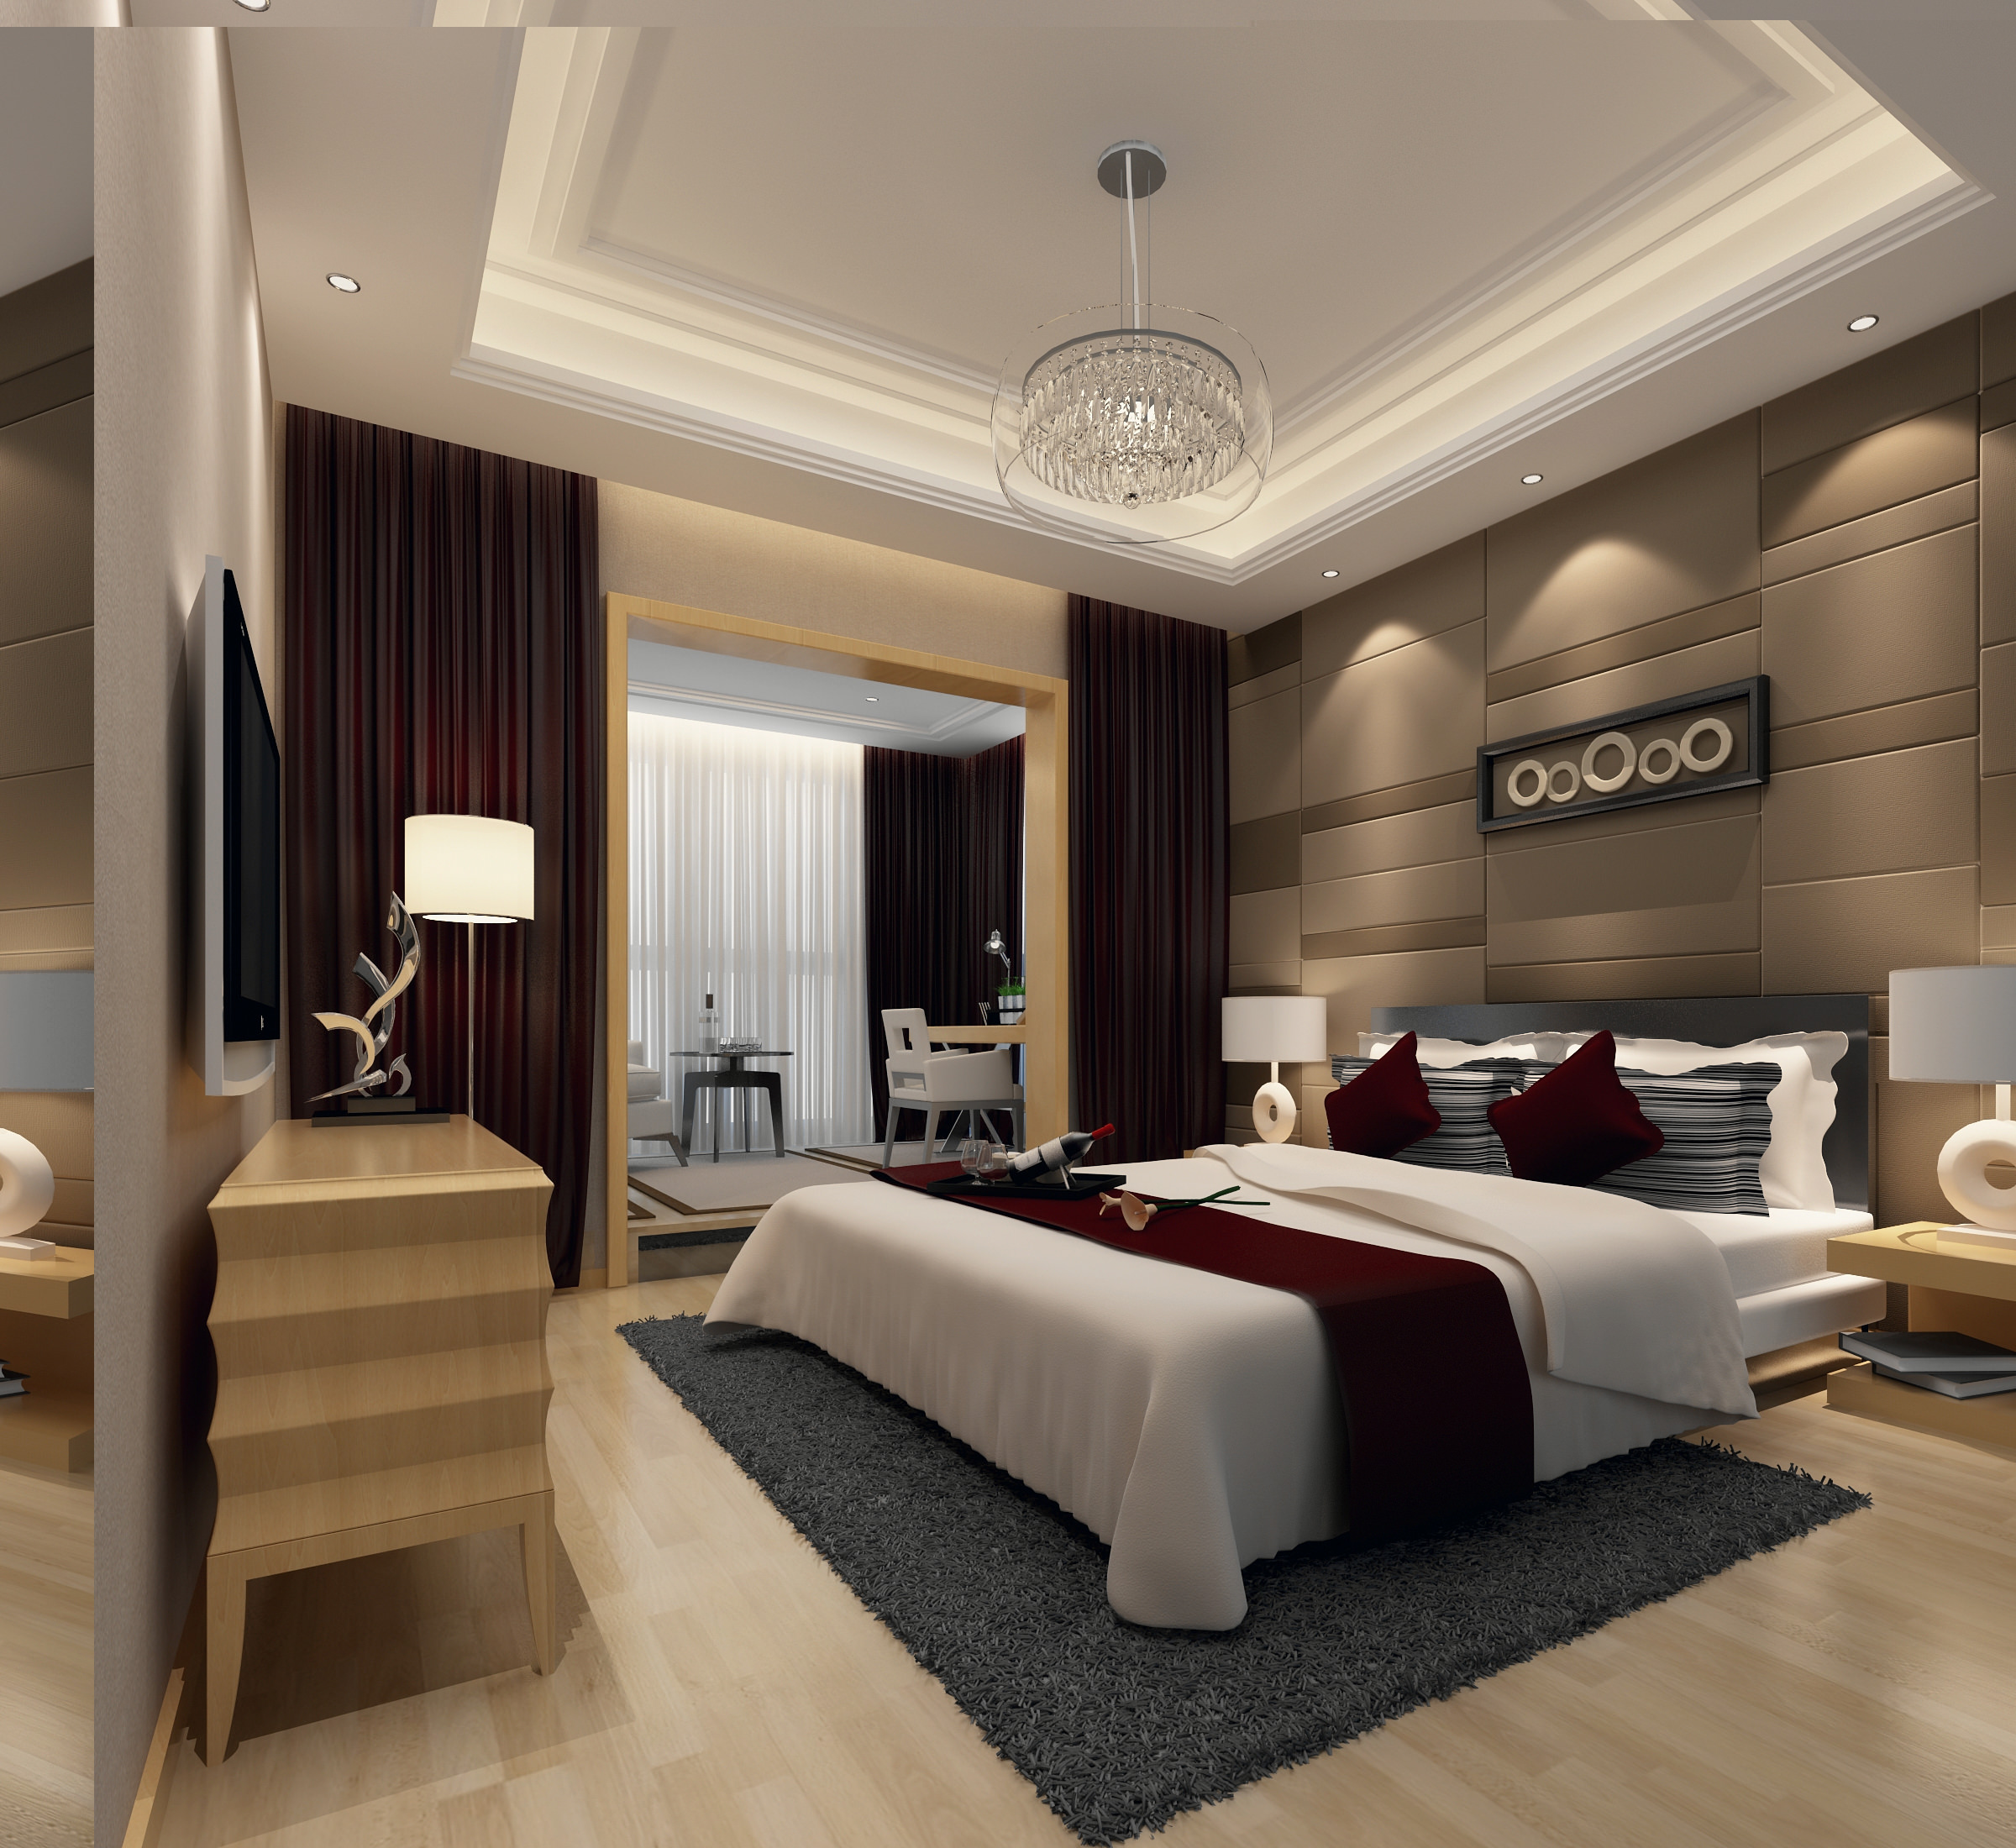 Modern Bedroom 3D Model MAX | CGTrader.com on Model Bedroom Ideas  id=77662